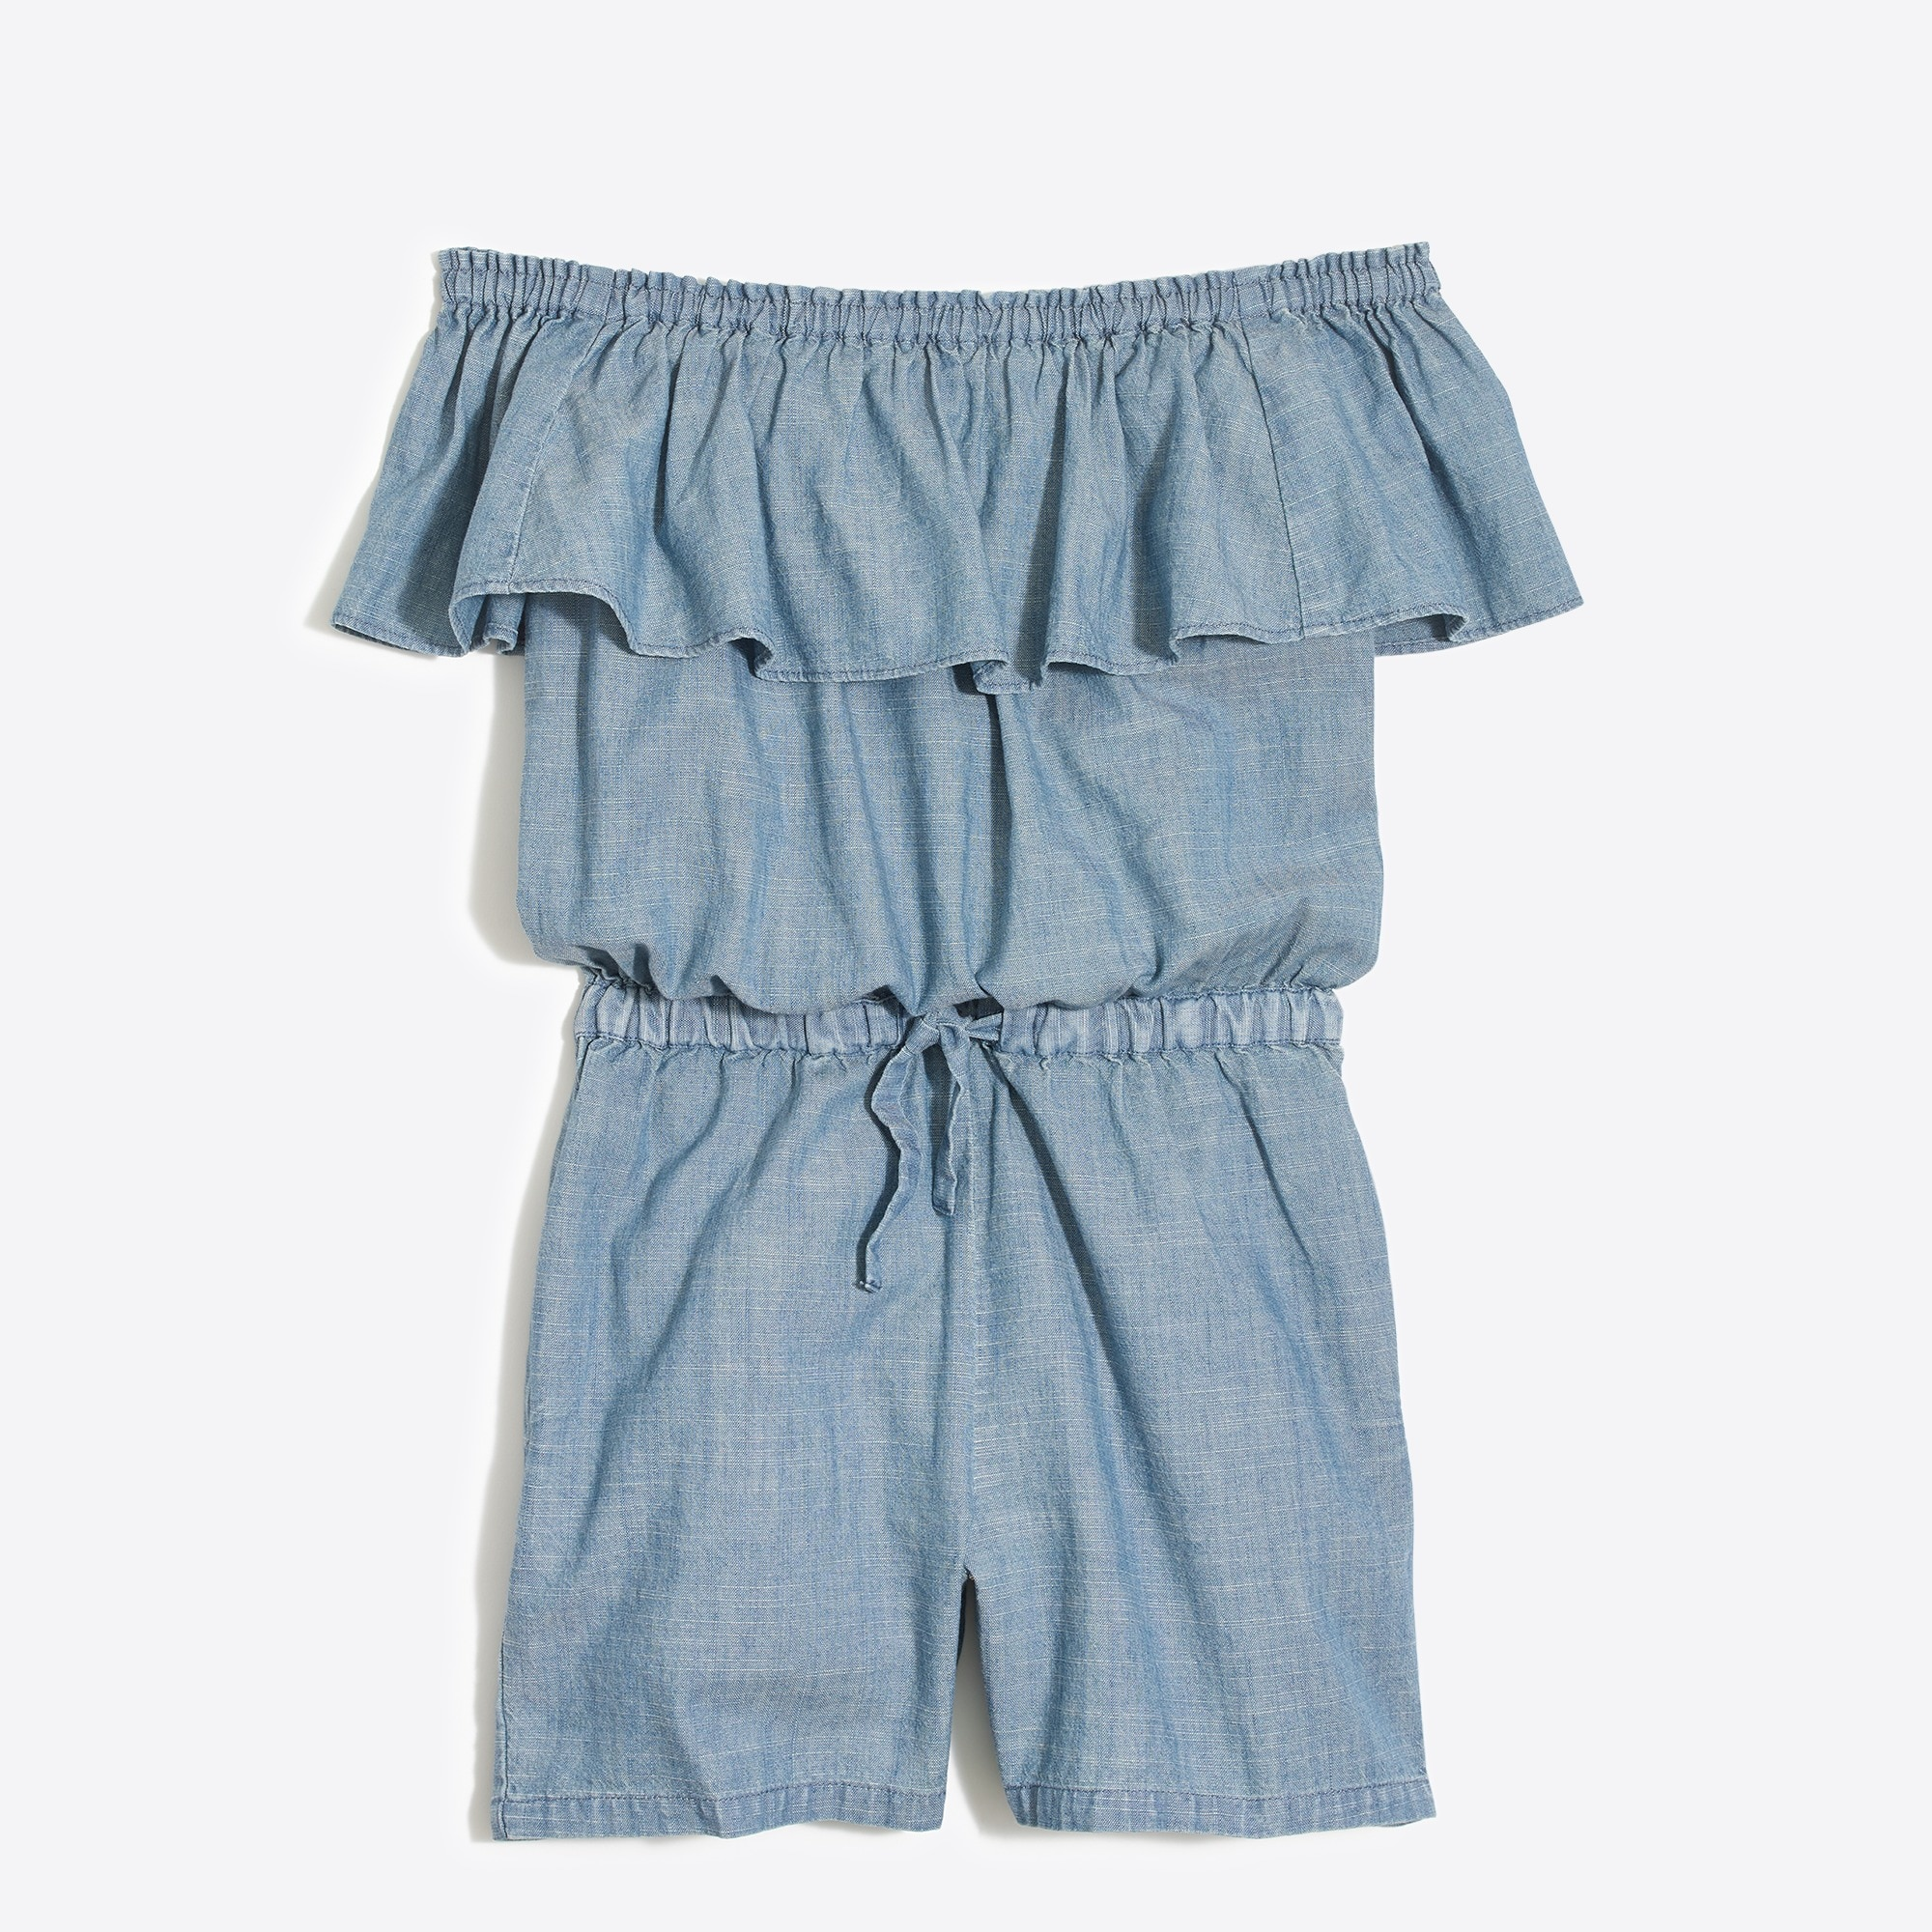 Girls' off-the-shoulder romper in chambray